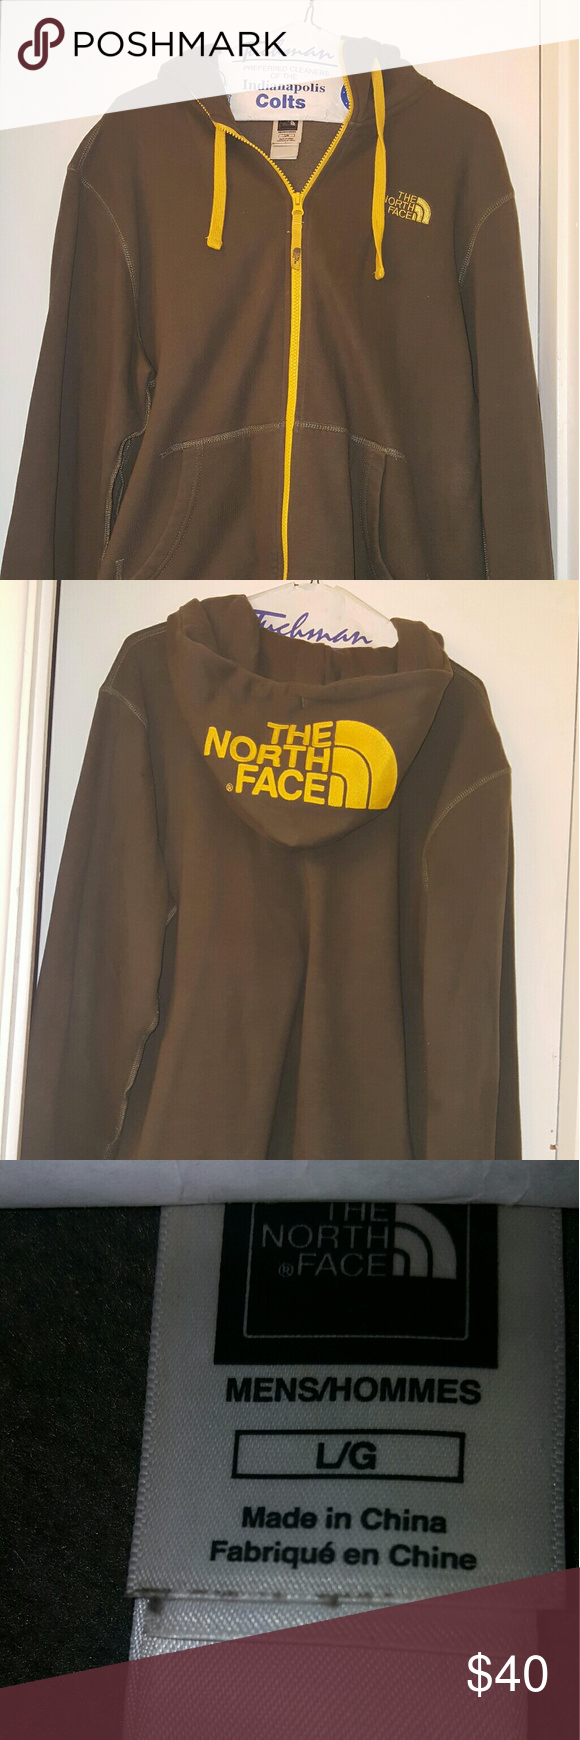 North face full zip hoodie Green/yellow size large (L) MEN'S full zip north face hoodie ... Excellent condition North Face Sweaters Zip Up